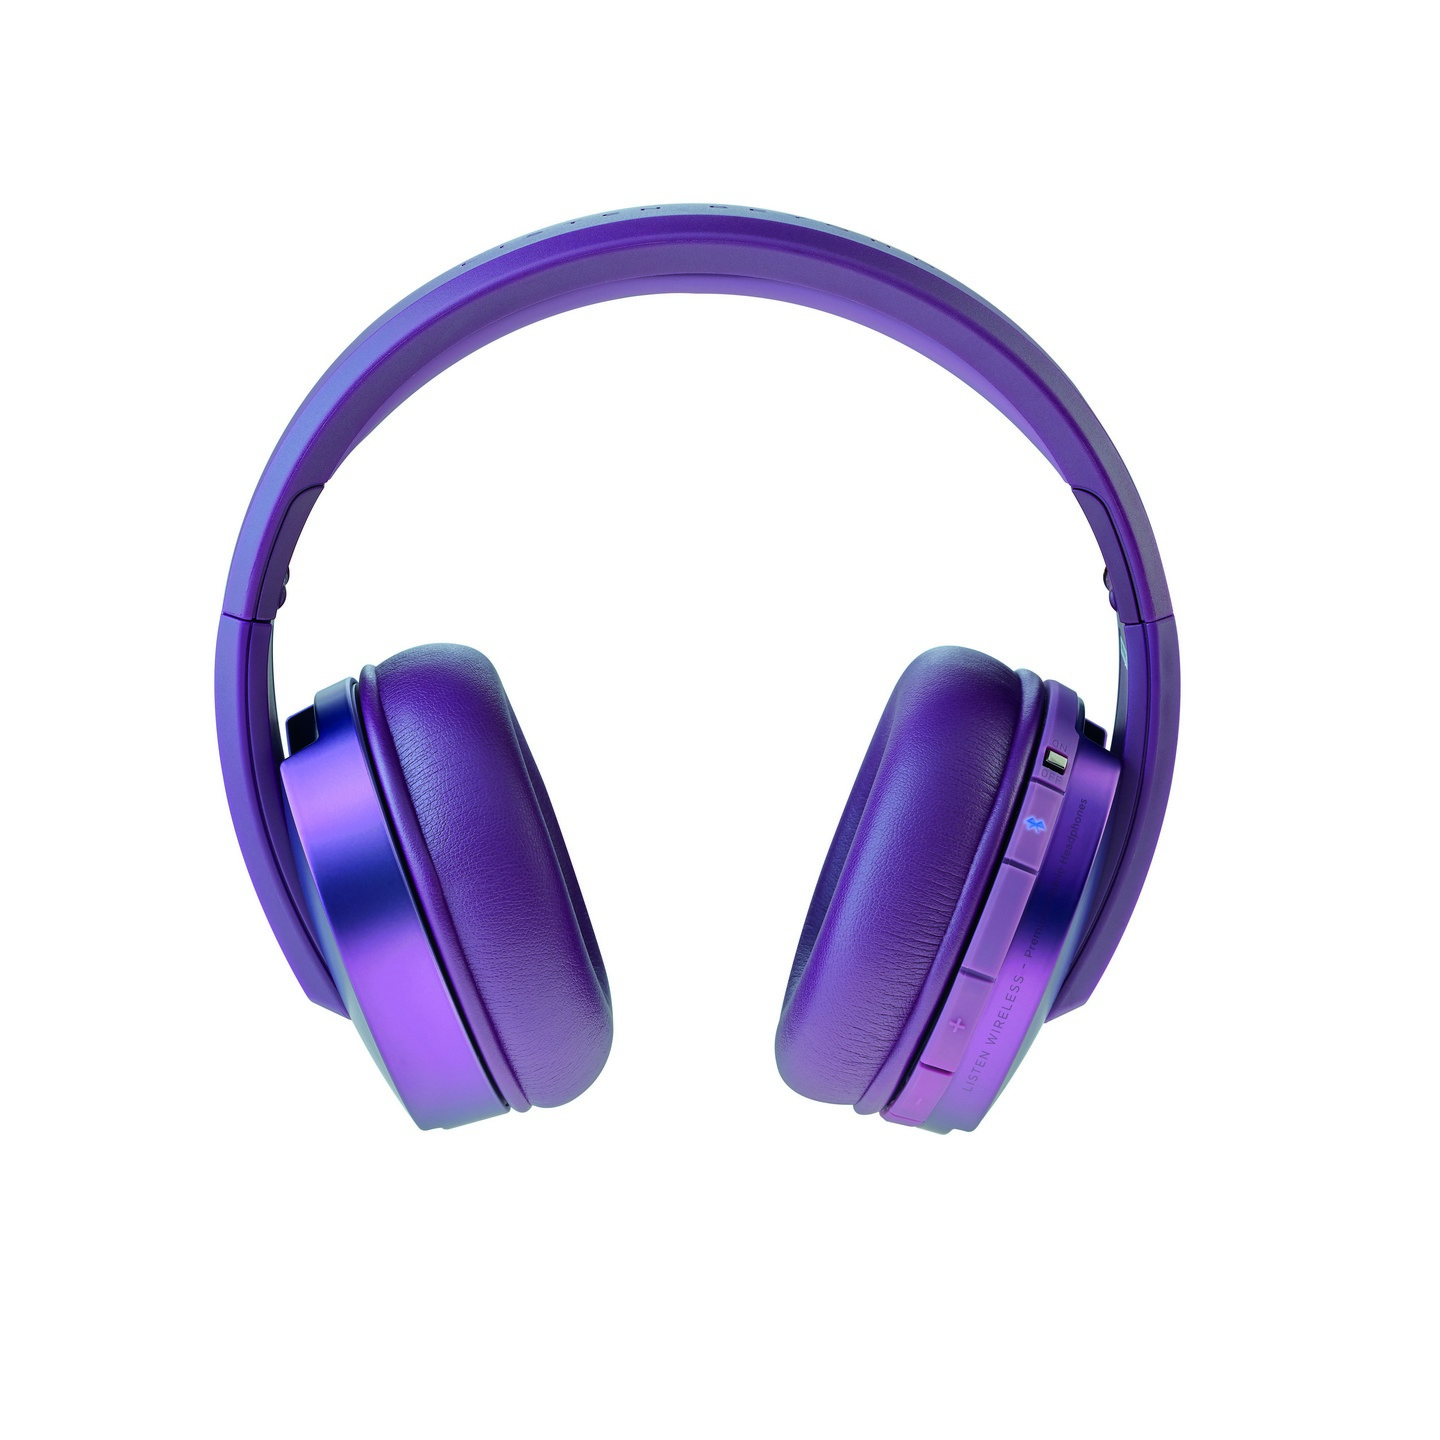 FOCAL LISTEN WIRELESS 密閉式頭戴無線耳機 PURPLE(紫)